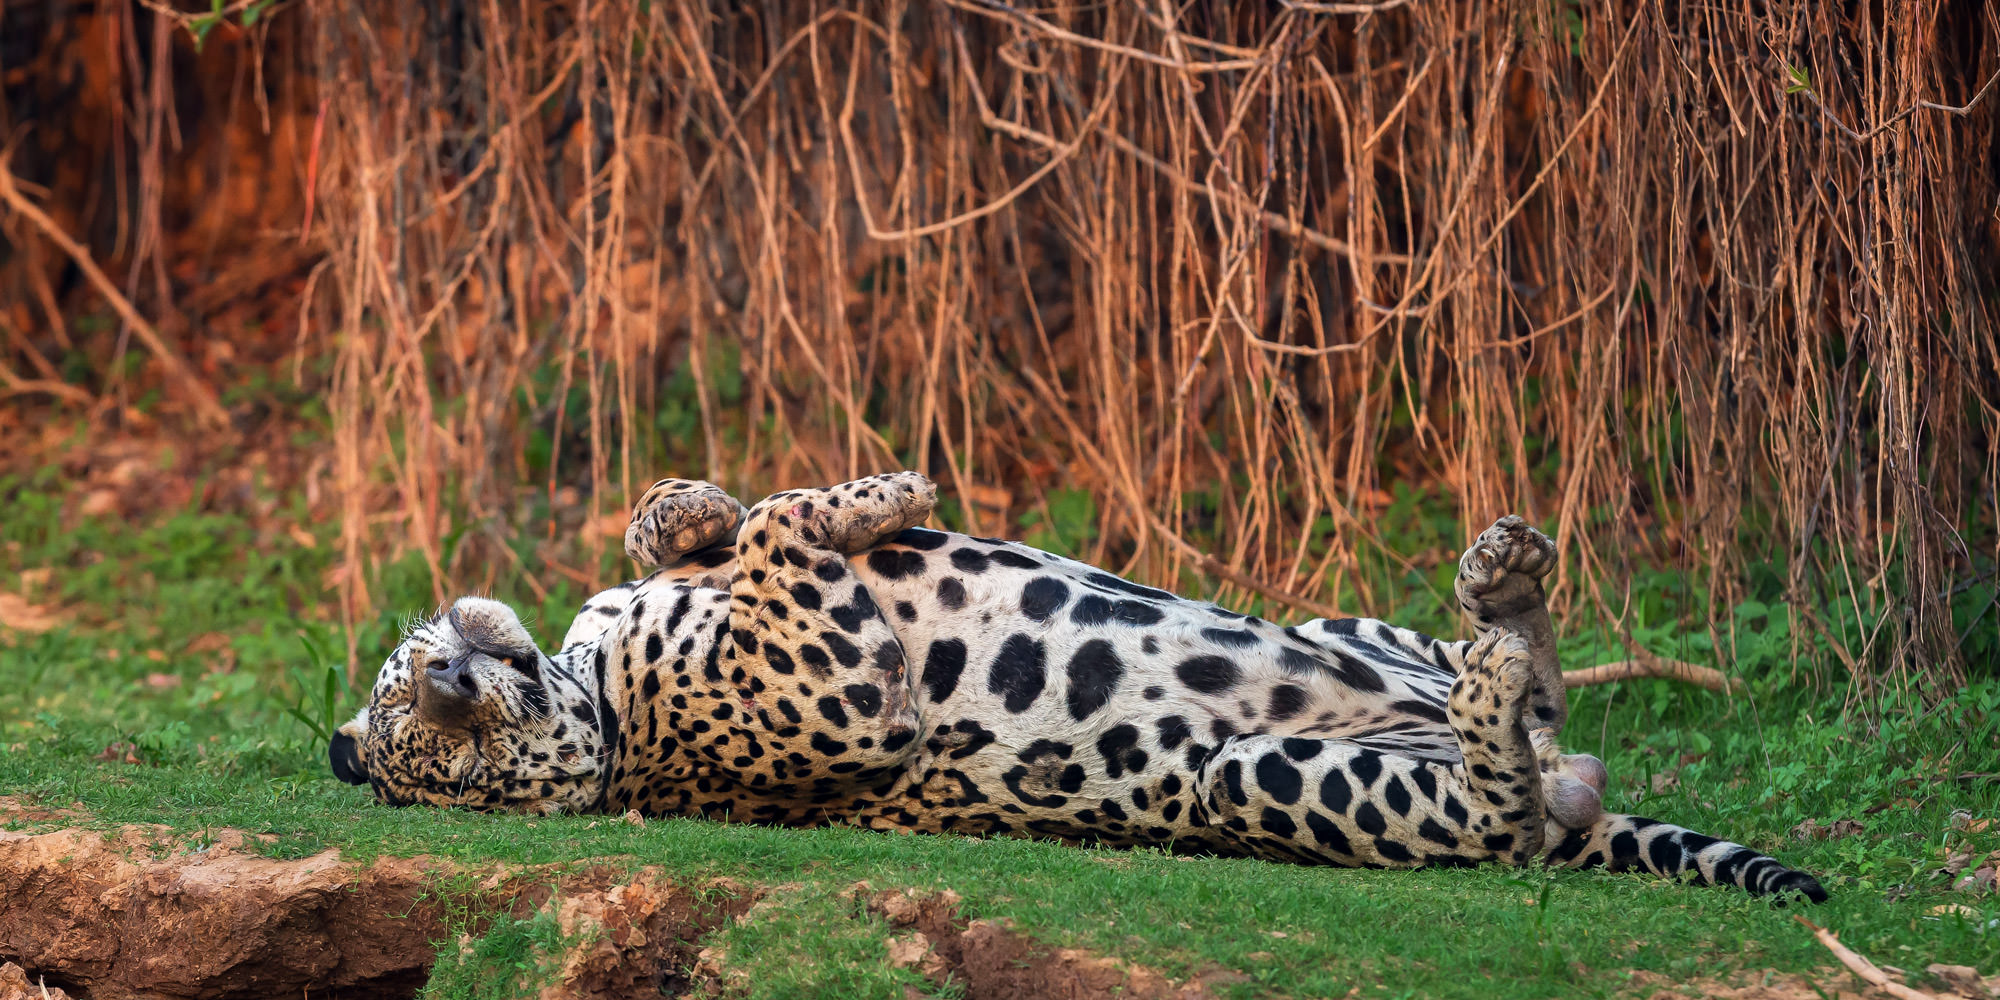 Jaguar Fine Art Photography A Limited Edition photograph of a Jaguar relaxing on it's back with no worries at The Pantanal in...